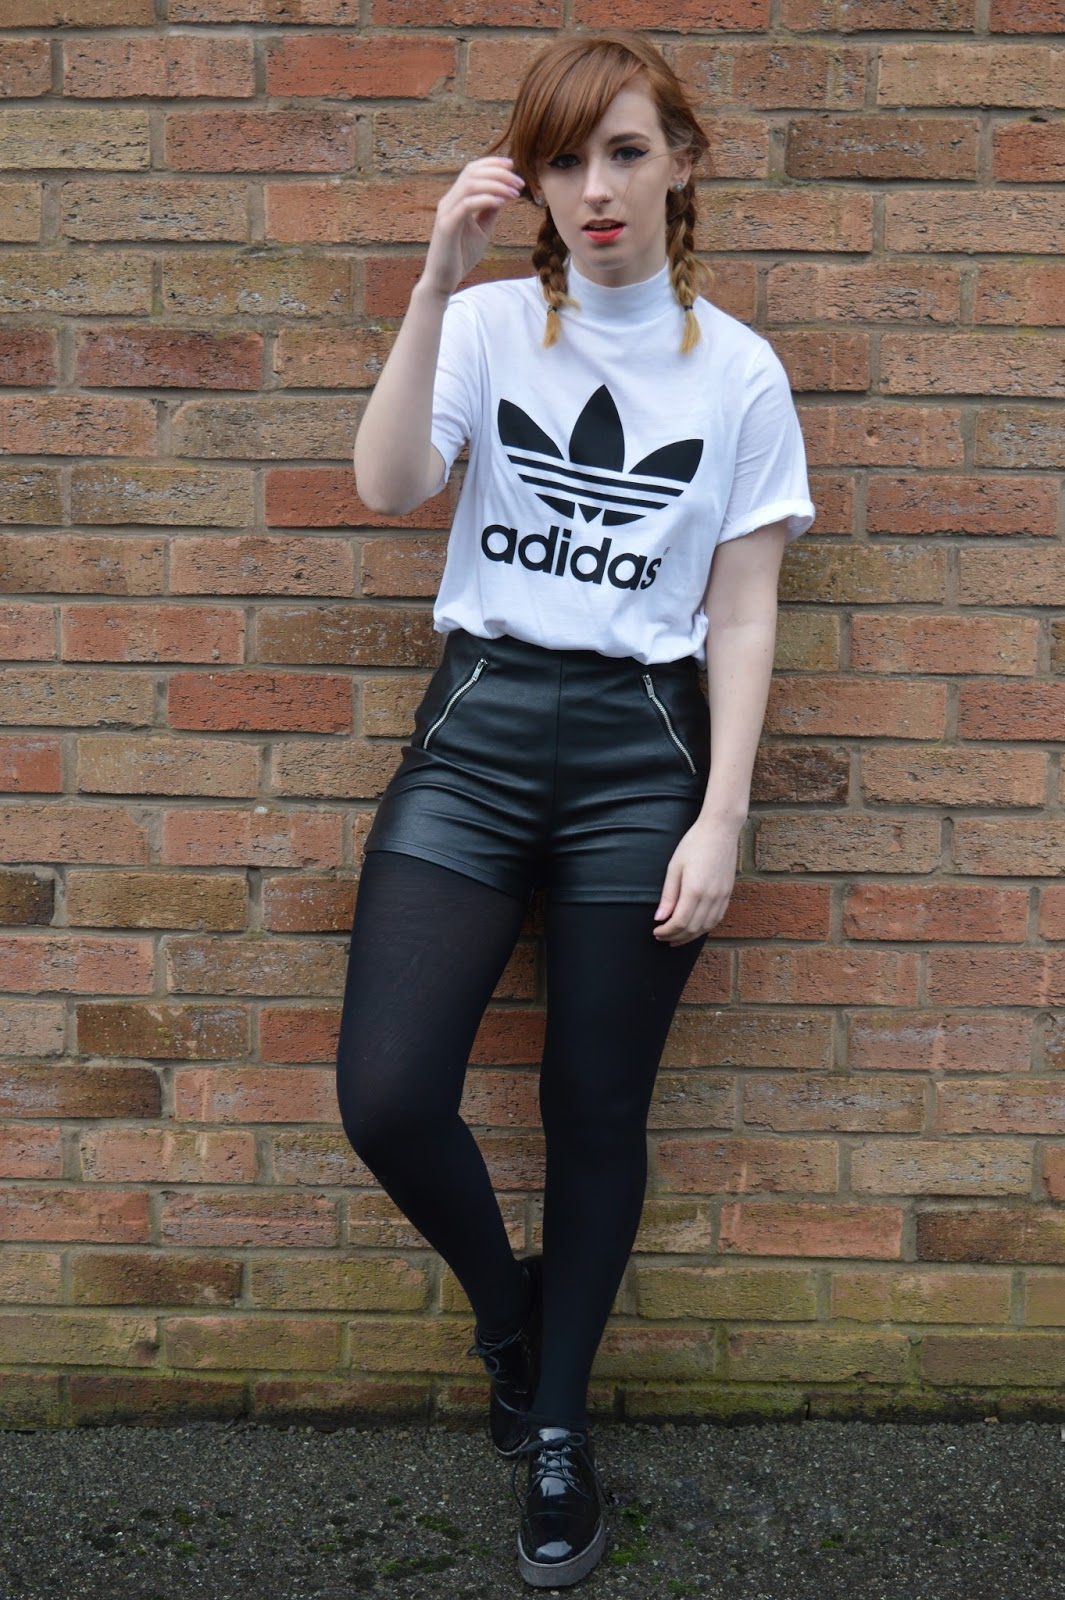 Adidas with leather shorts